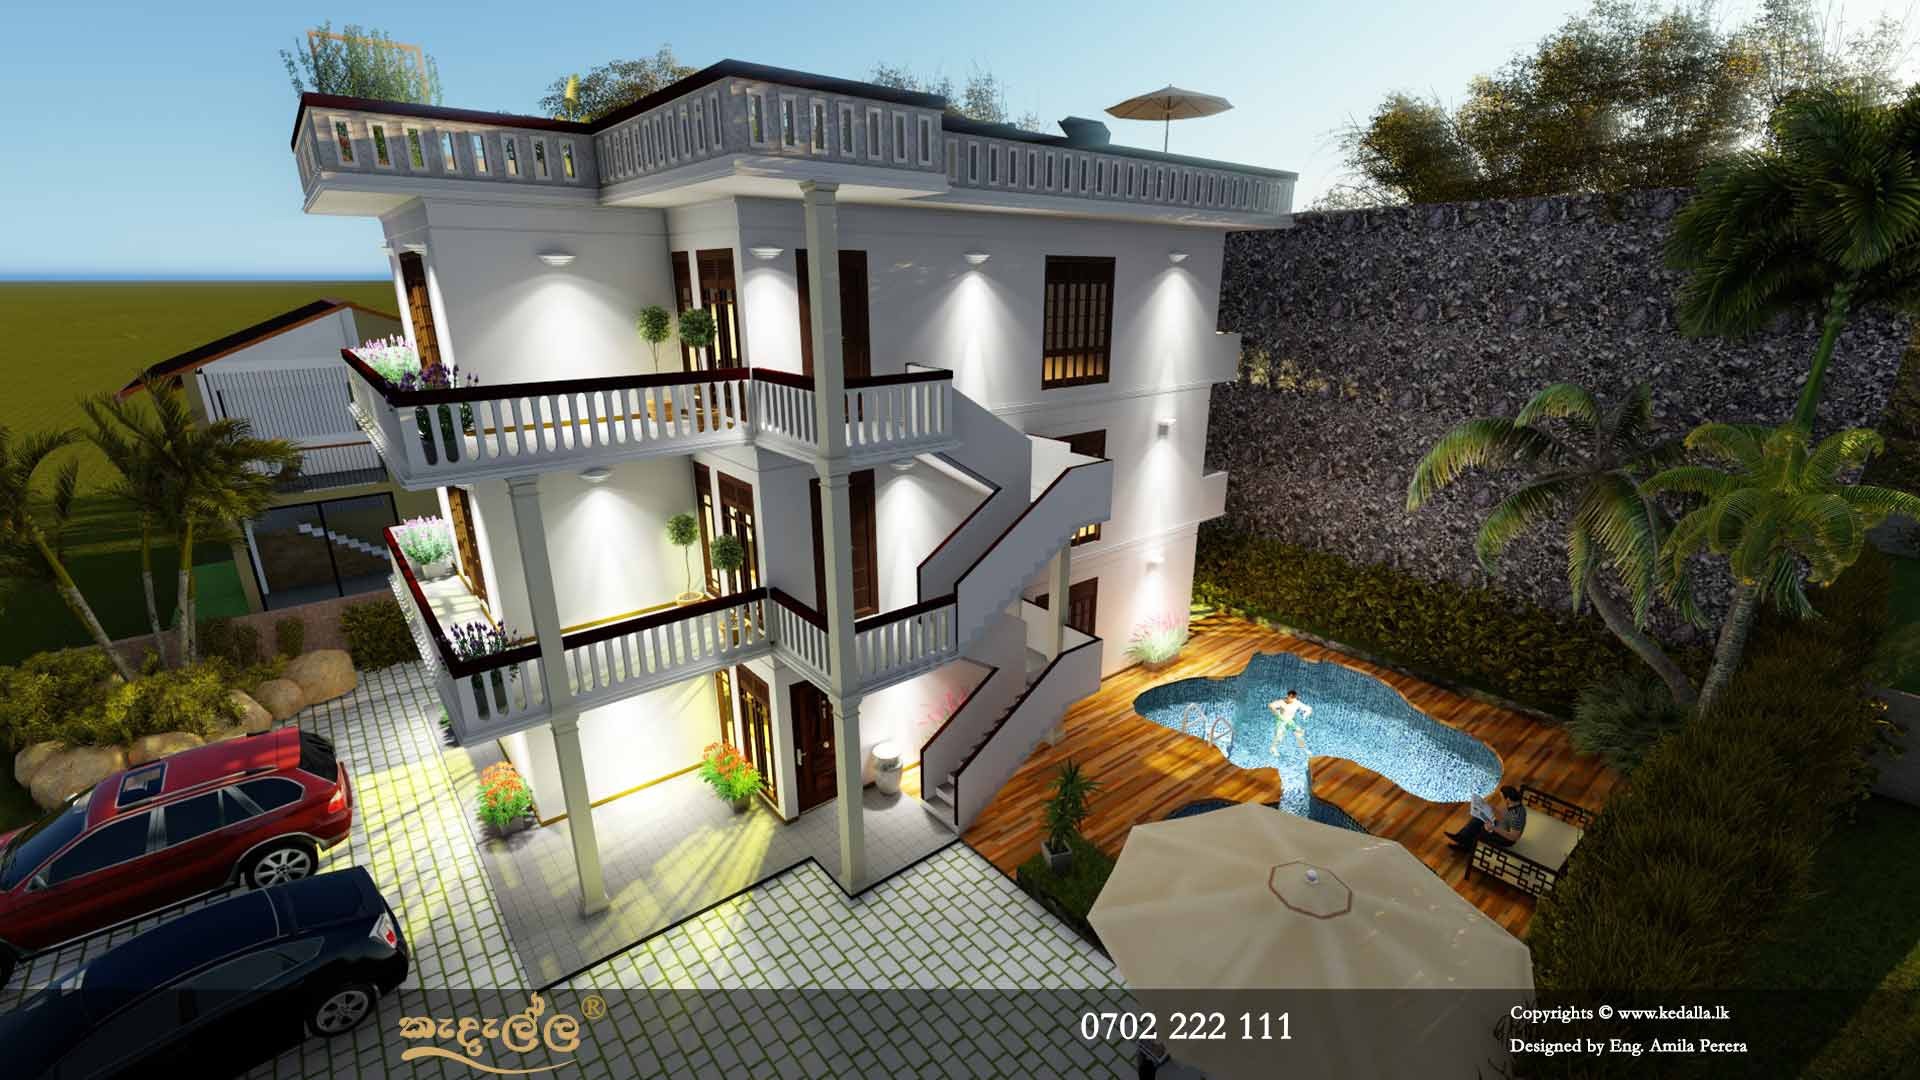 Three Story House Plans in Sri Lanka with curved shape mini swimming pool at ground level